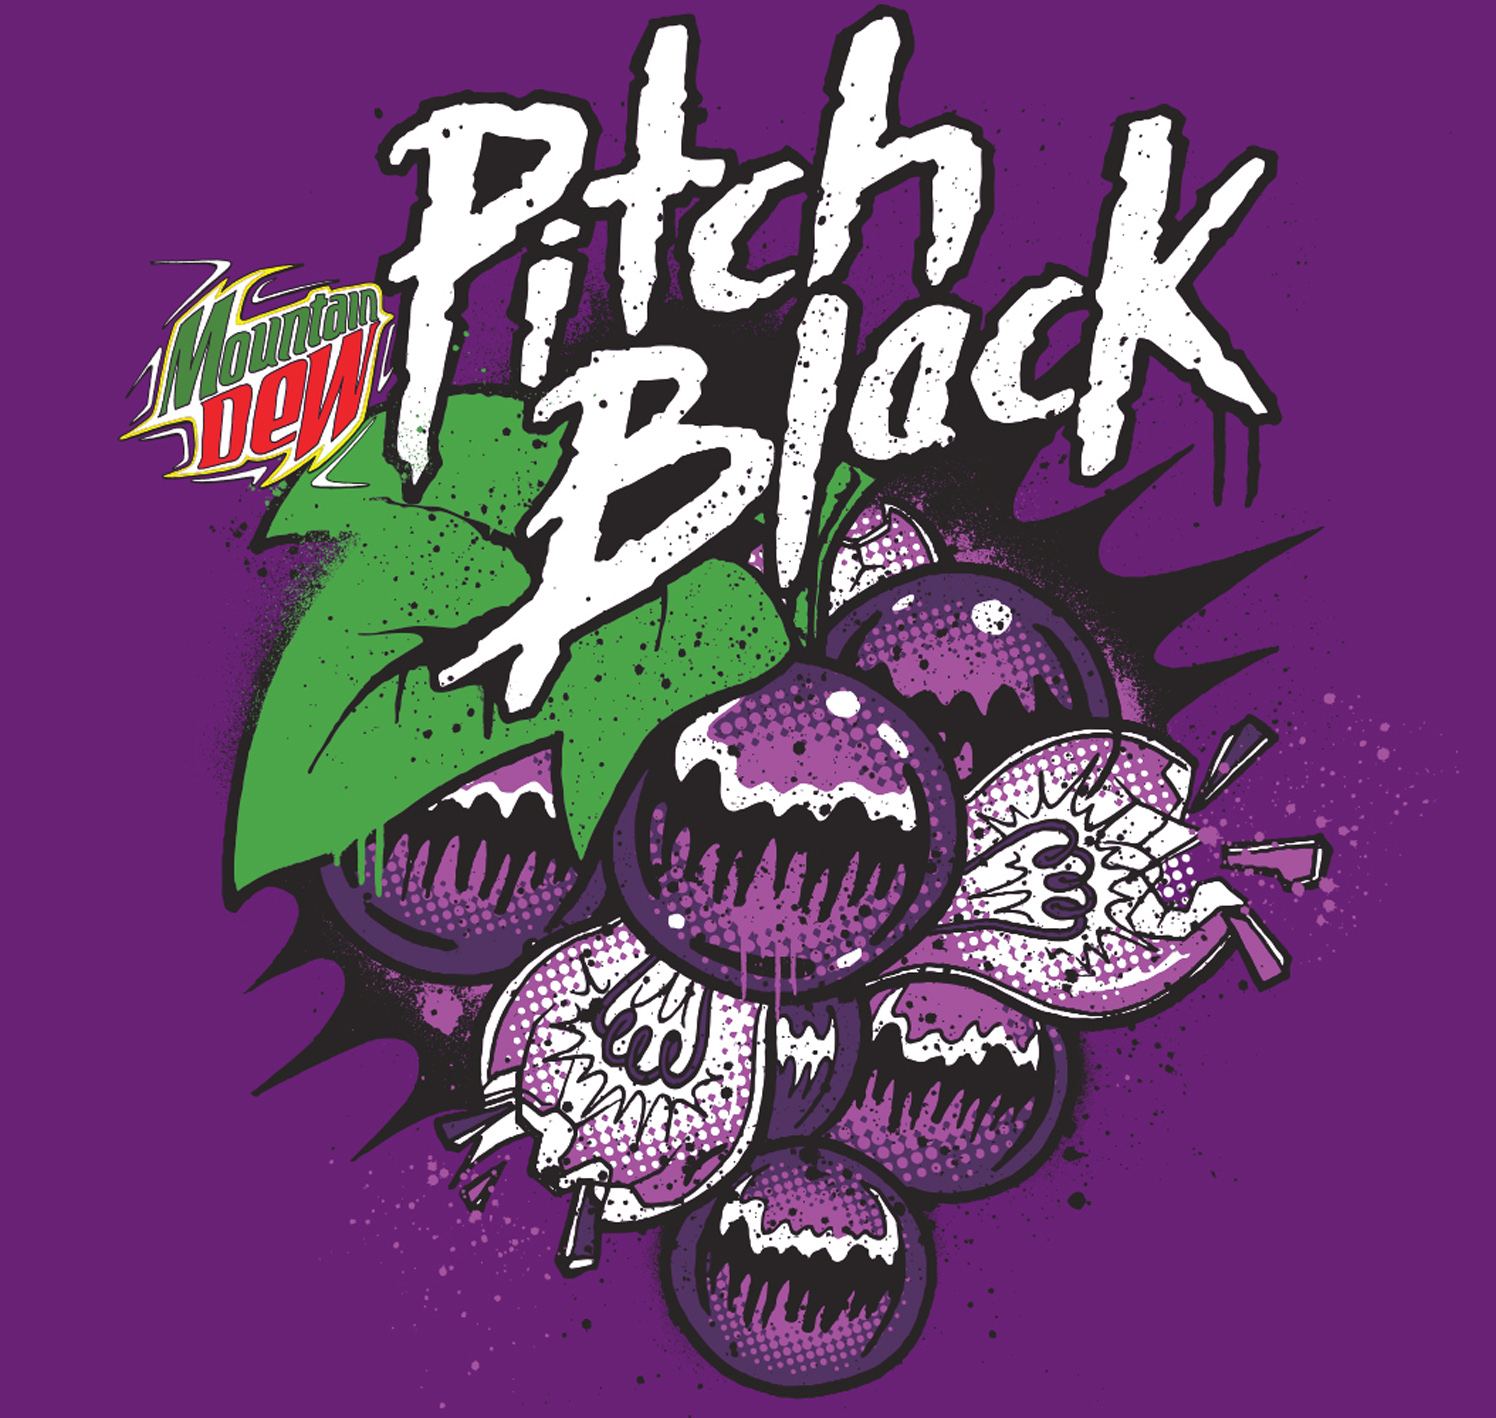 Pitch Black / Mountain Dew